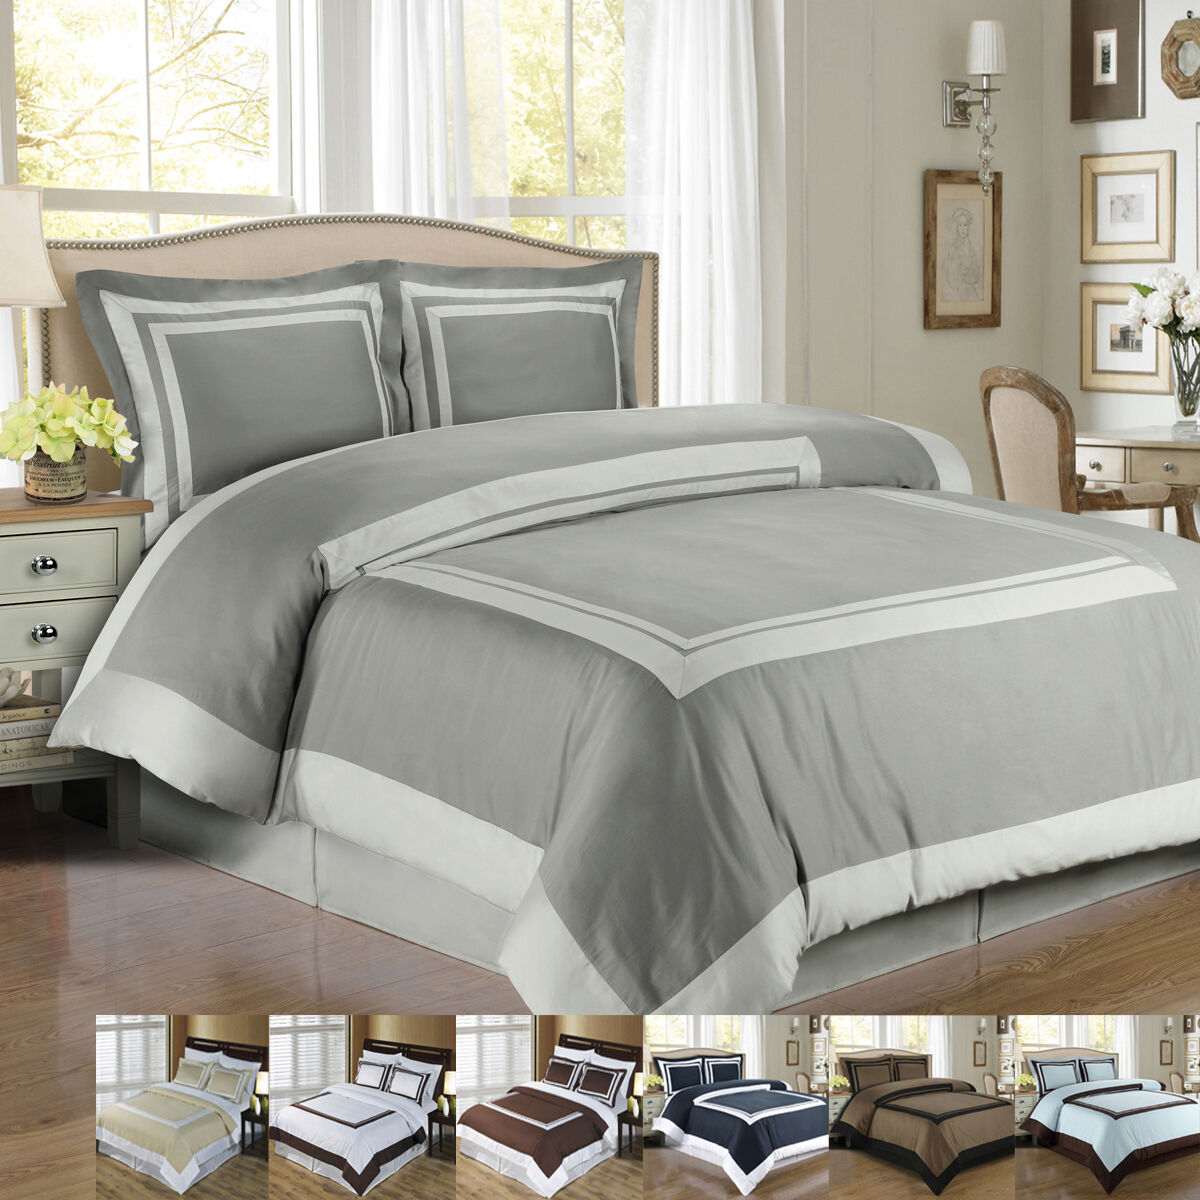 HOTEL DUVET StKunstseite SET,100% Egyptian Cotton Elegant & Ultra Sanft Duvet set